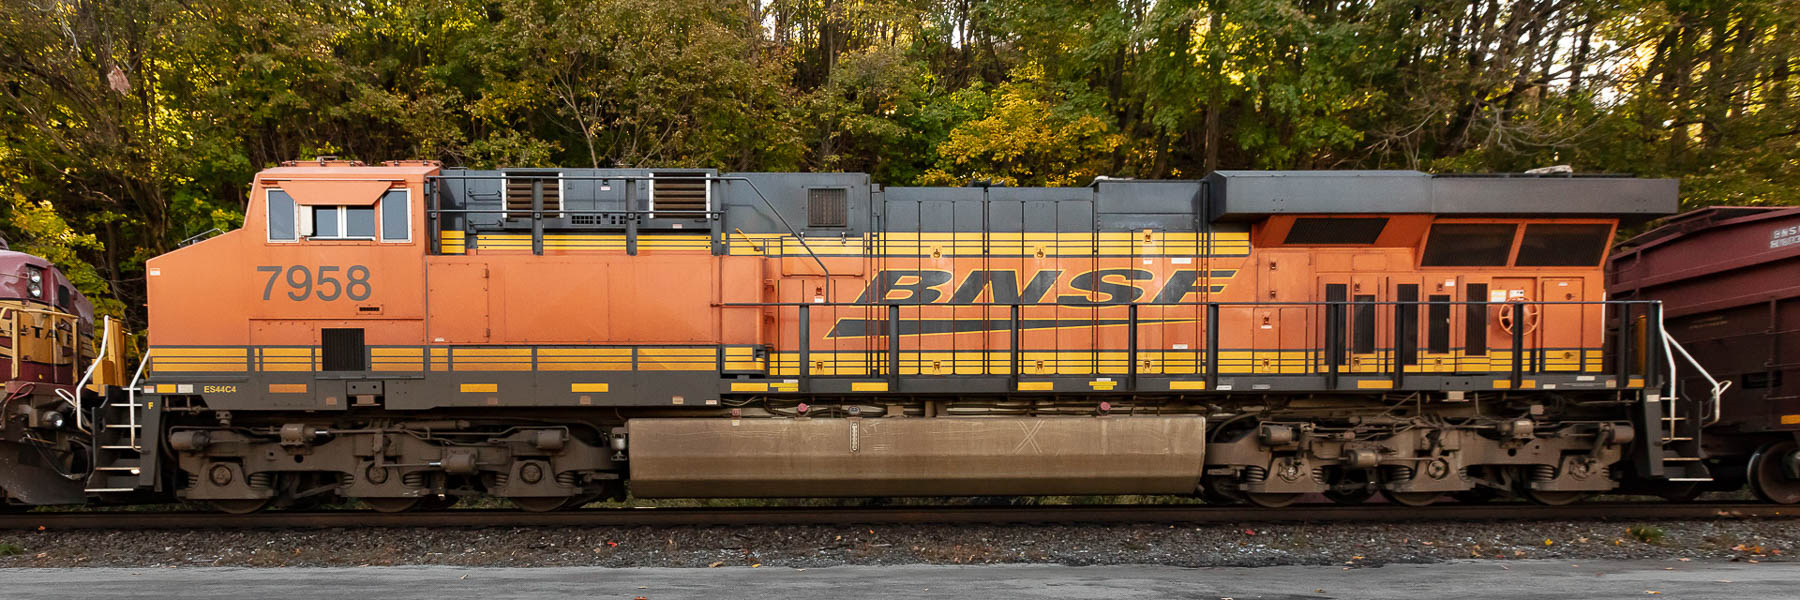 BNSF Locomotive 7958